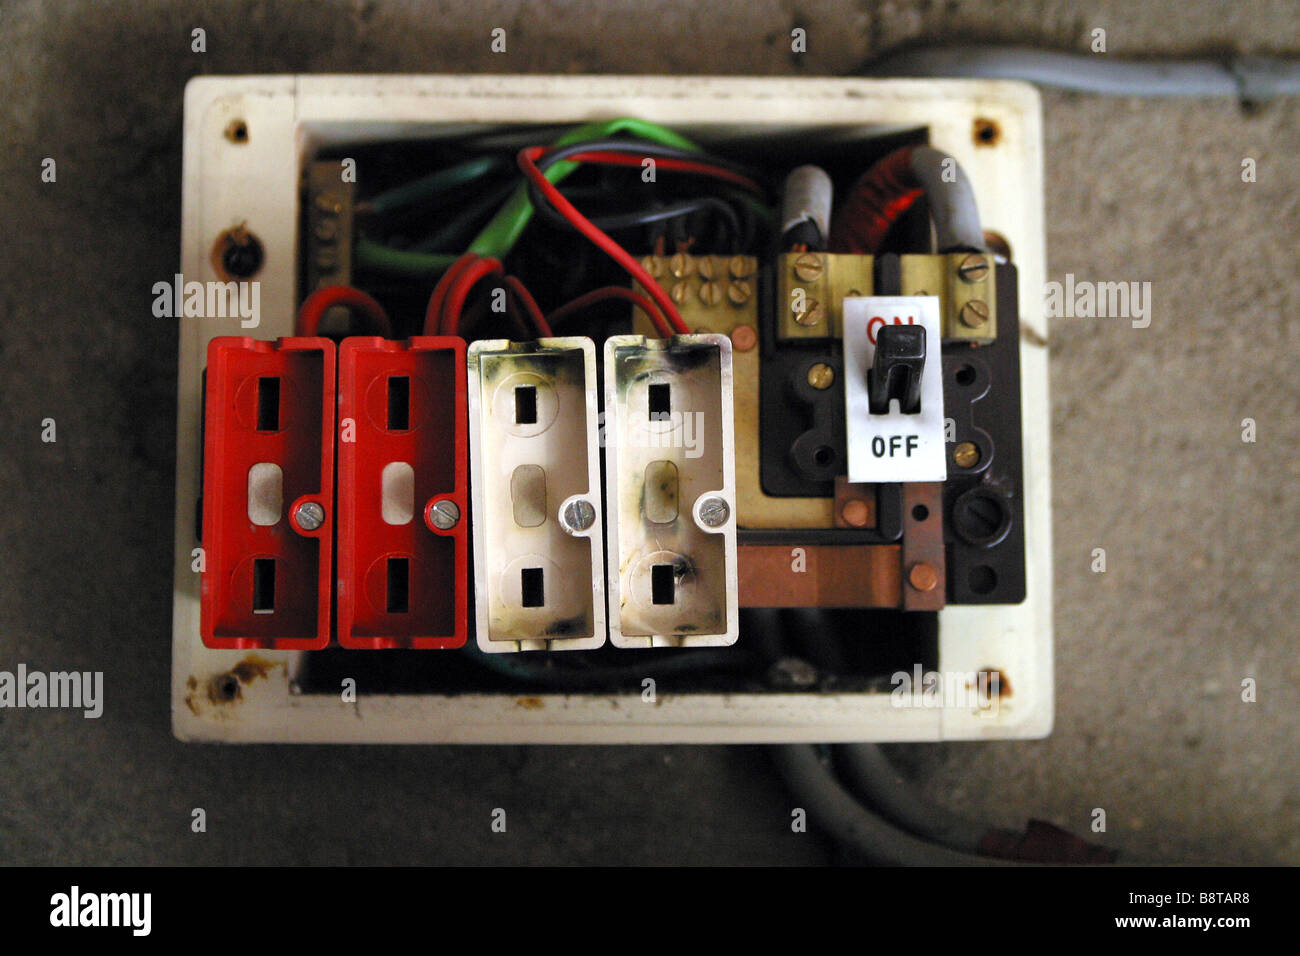 Old Style Fuse And Fuse Box - Wiring Diagram Expert on vintage fuse box, light fuse box, old fashioned cable box, modern fuse box, old fashioned hbo box, green fuse box, old black fuse box, chocolate fuse box,